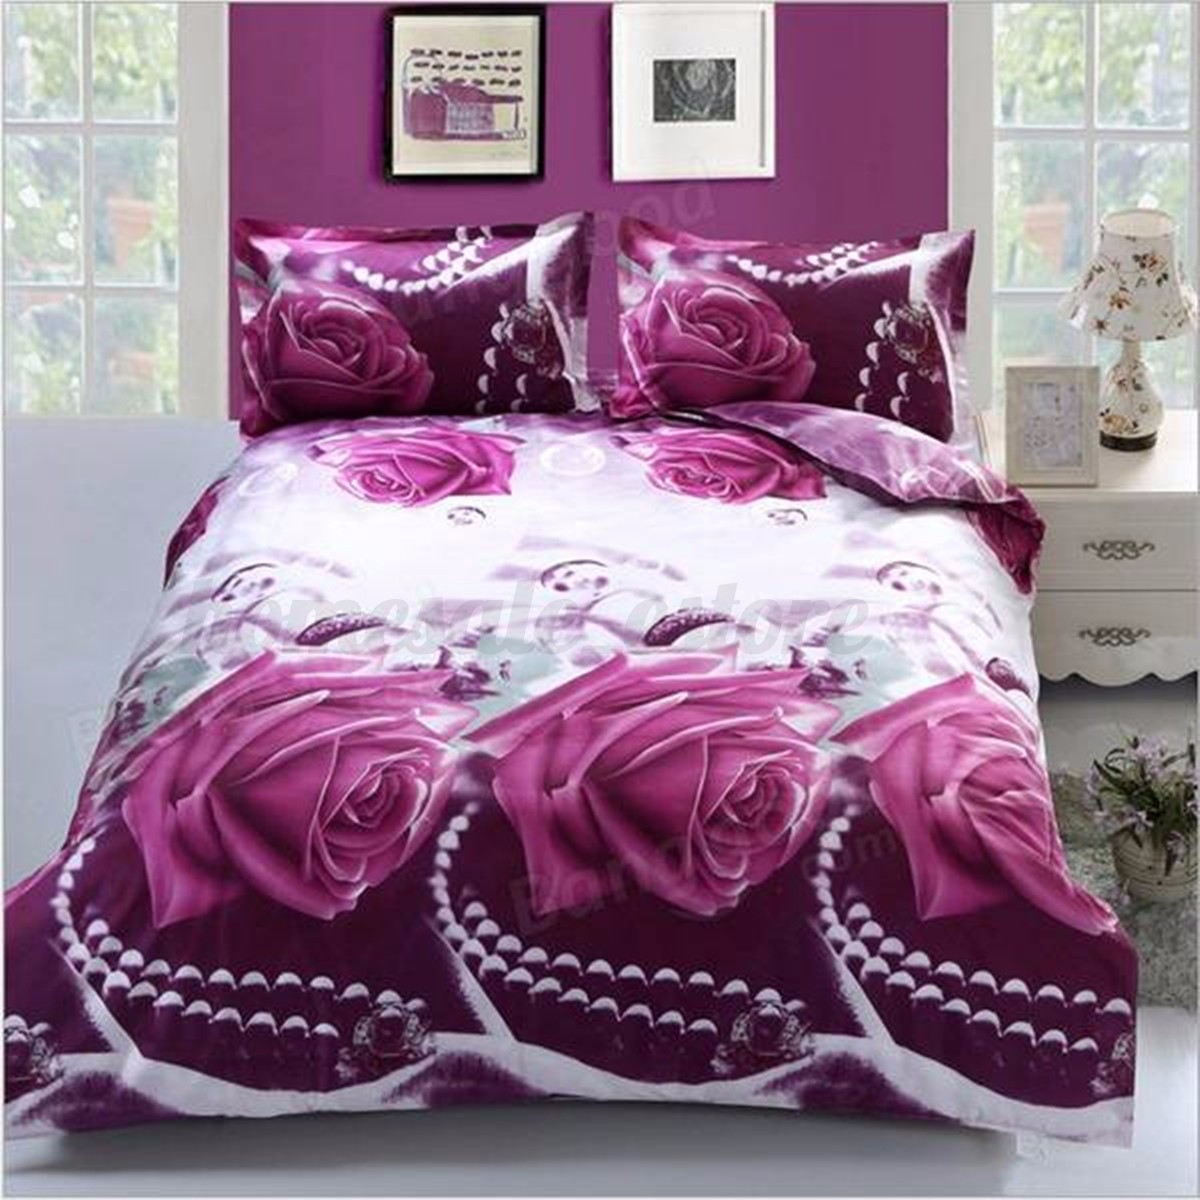 King Queen Bettwäsche New 3d Bedding Sets King Queen Size Duvet Cover Bed Sheet